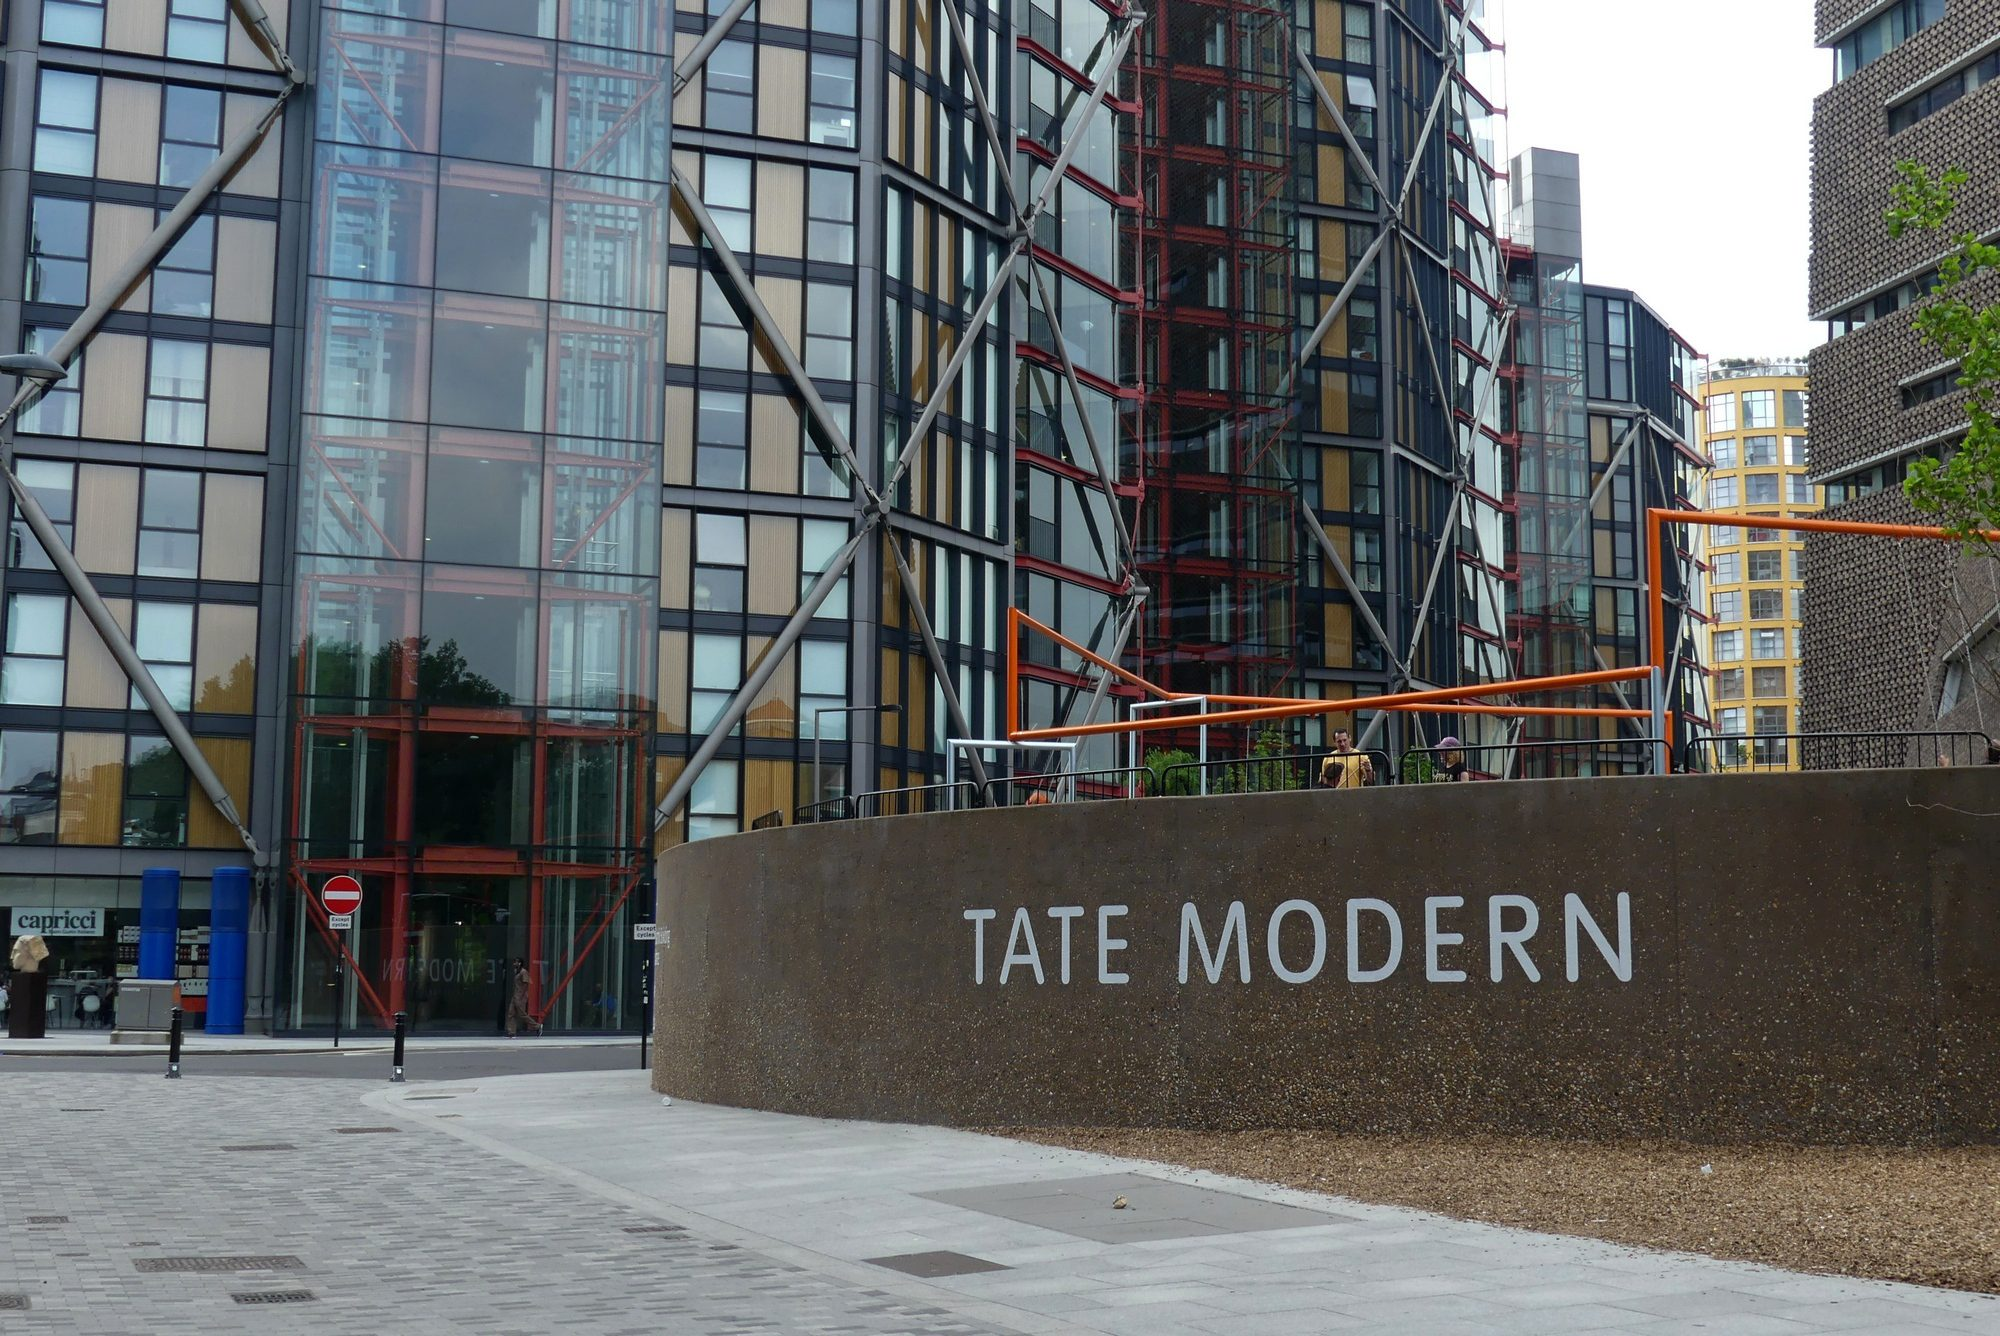 Platz an der Tate Modern in London